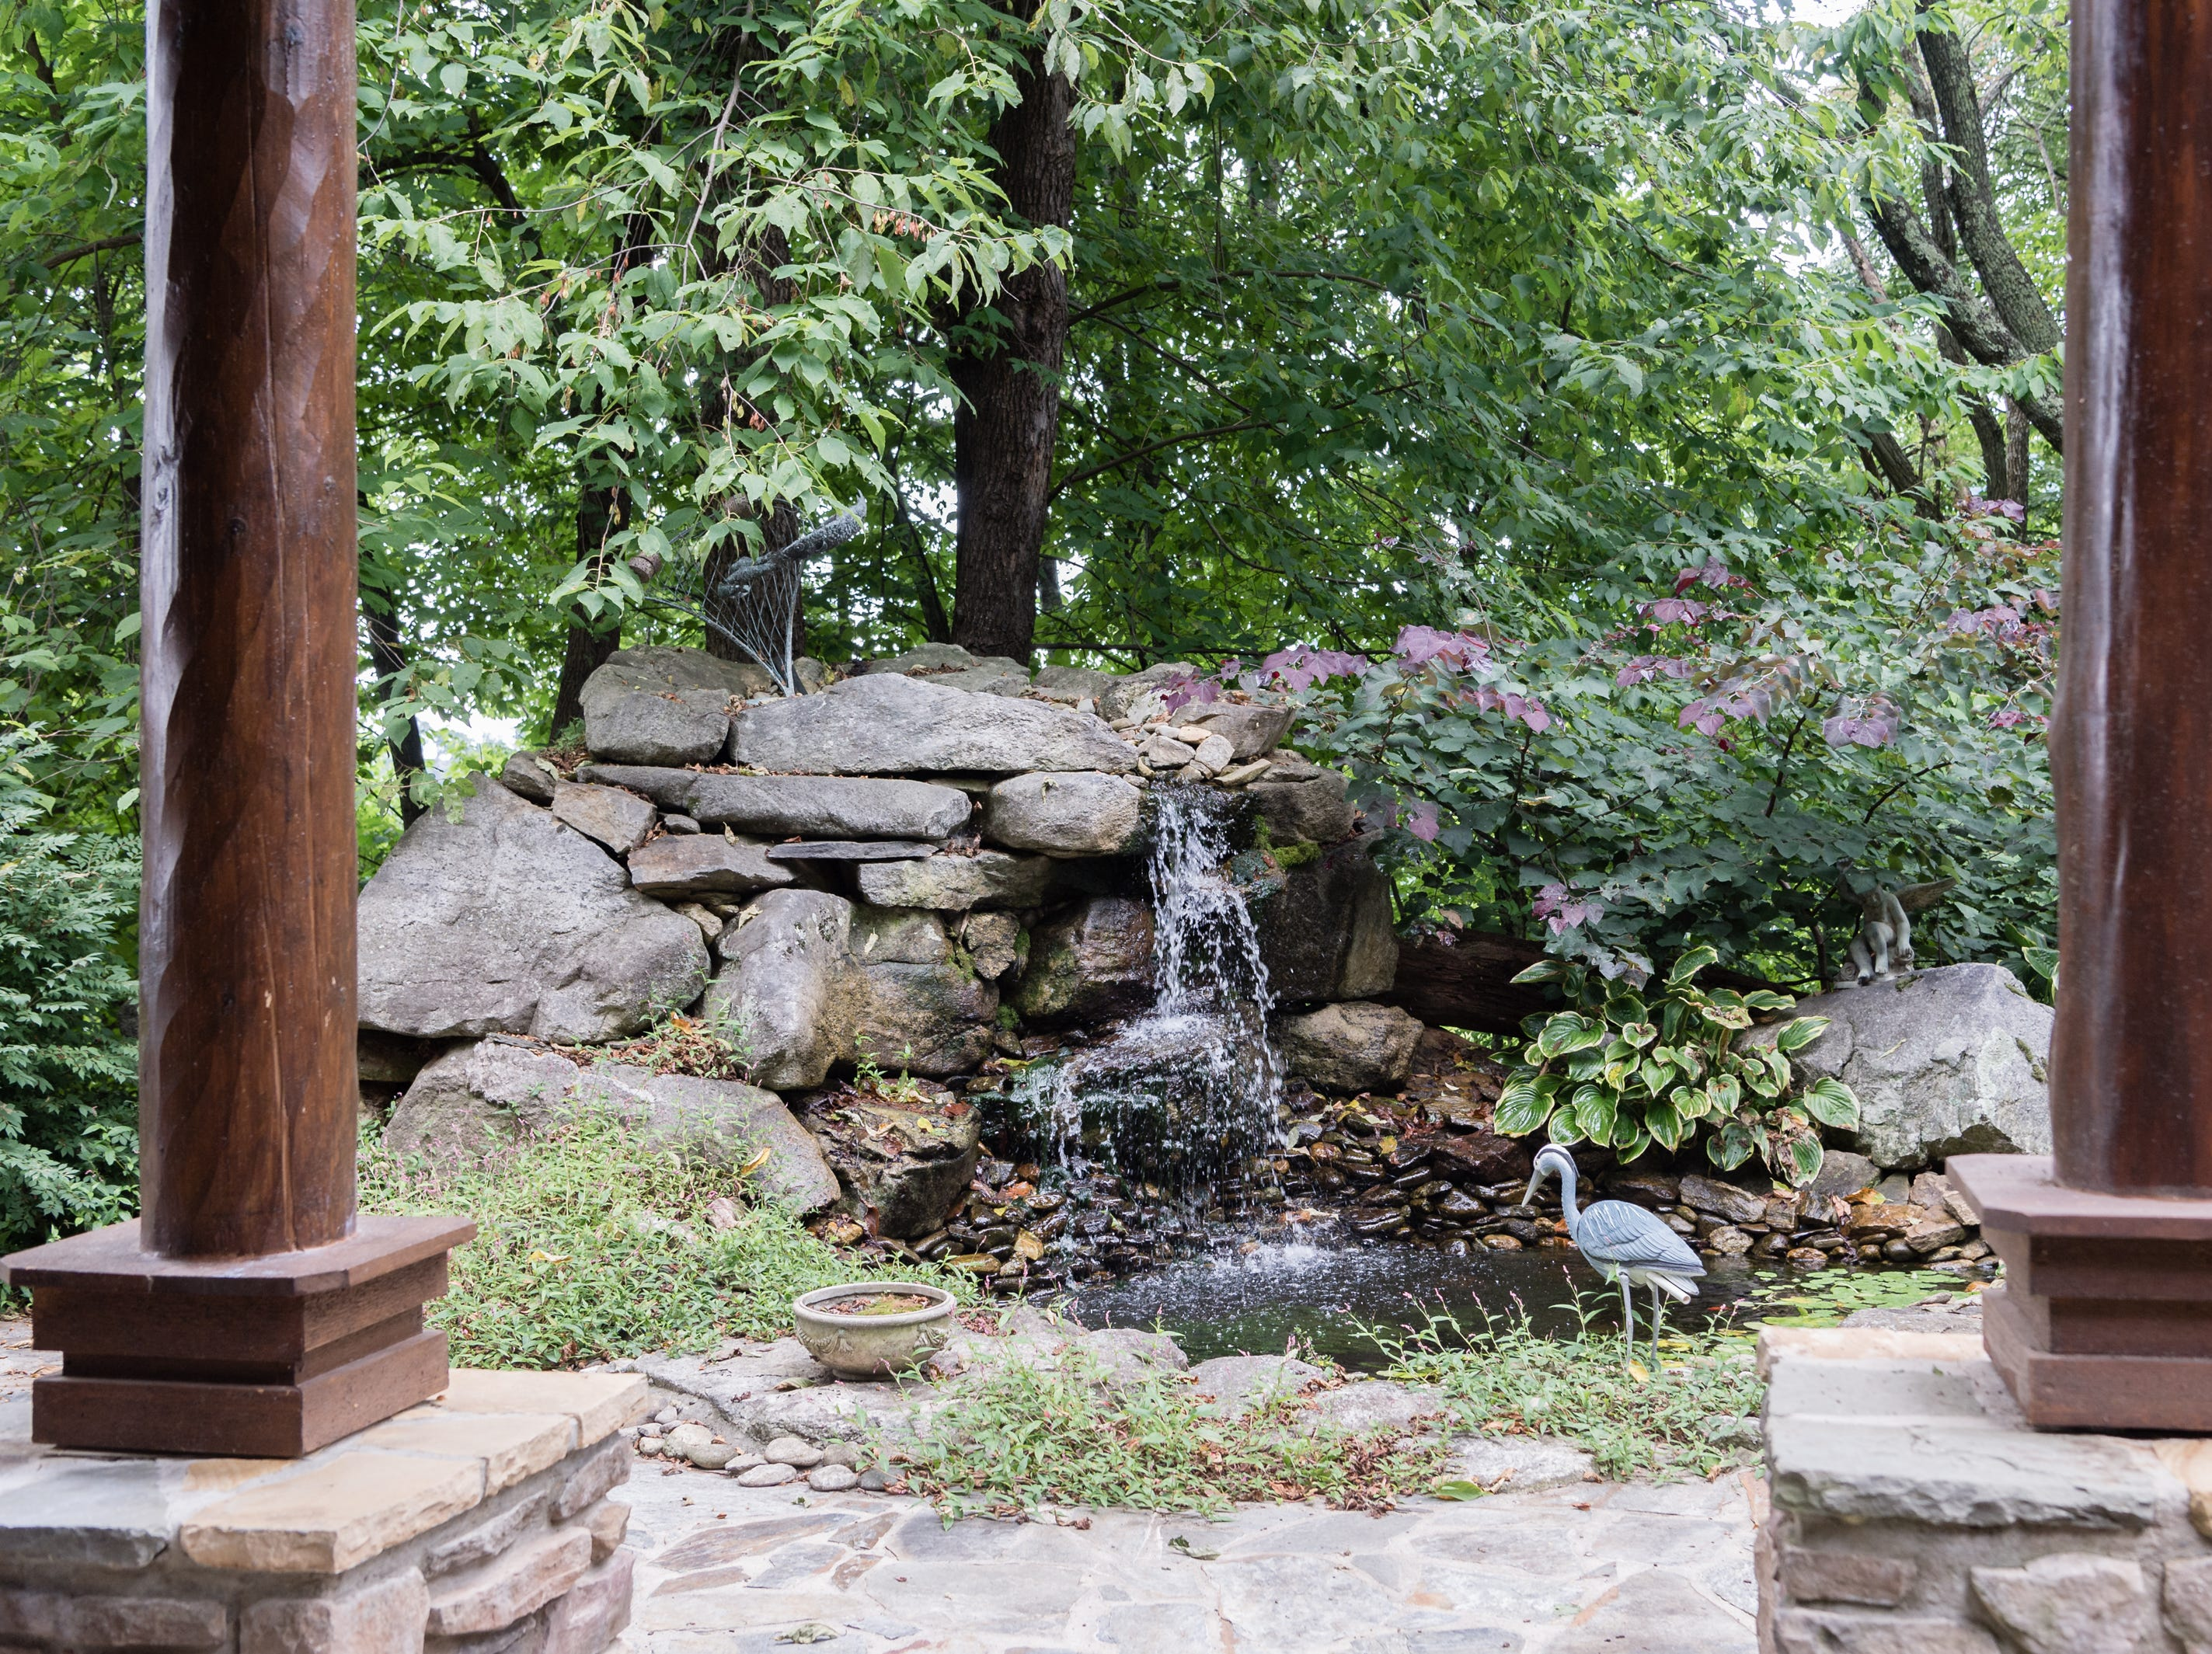 A water feature on the property of Dan and Belle Fangmeyer's log cabin in Waynesville.